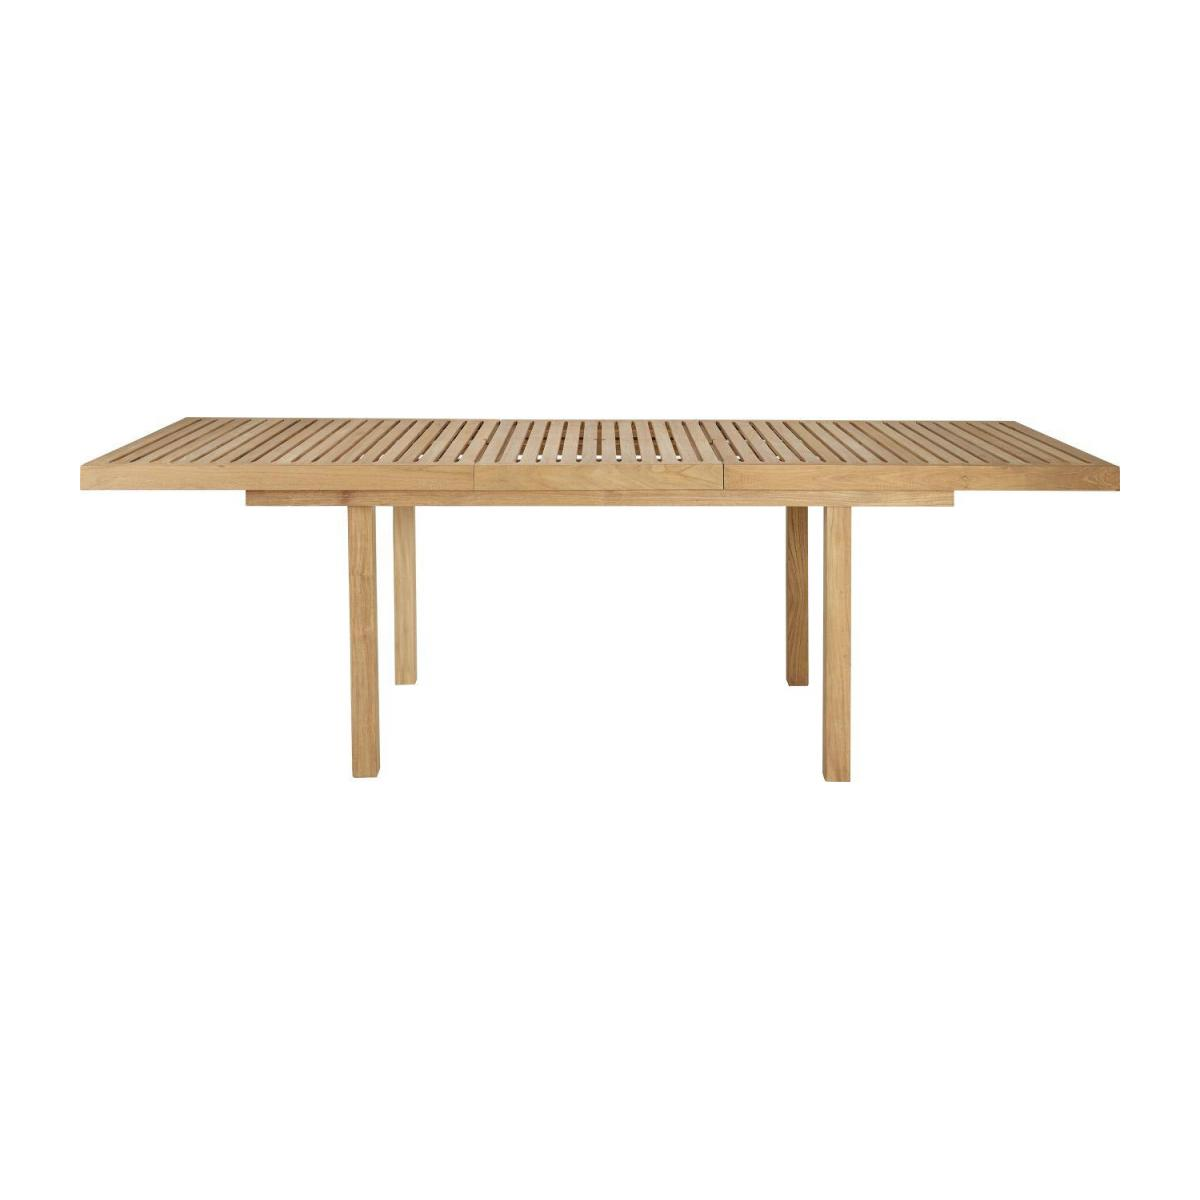 Teak extendible garden table n°4